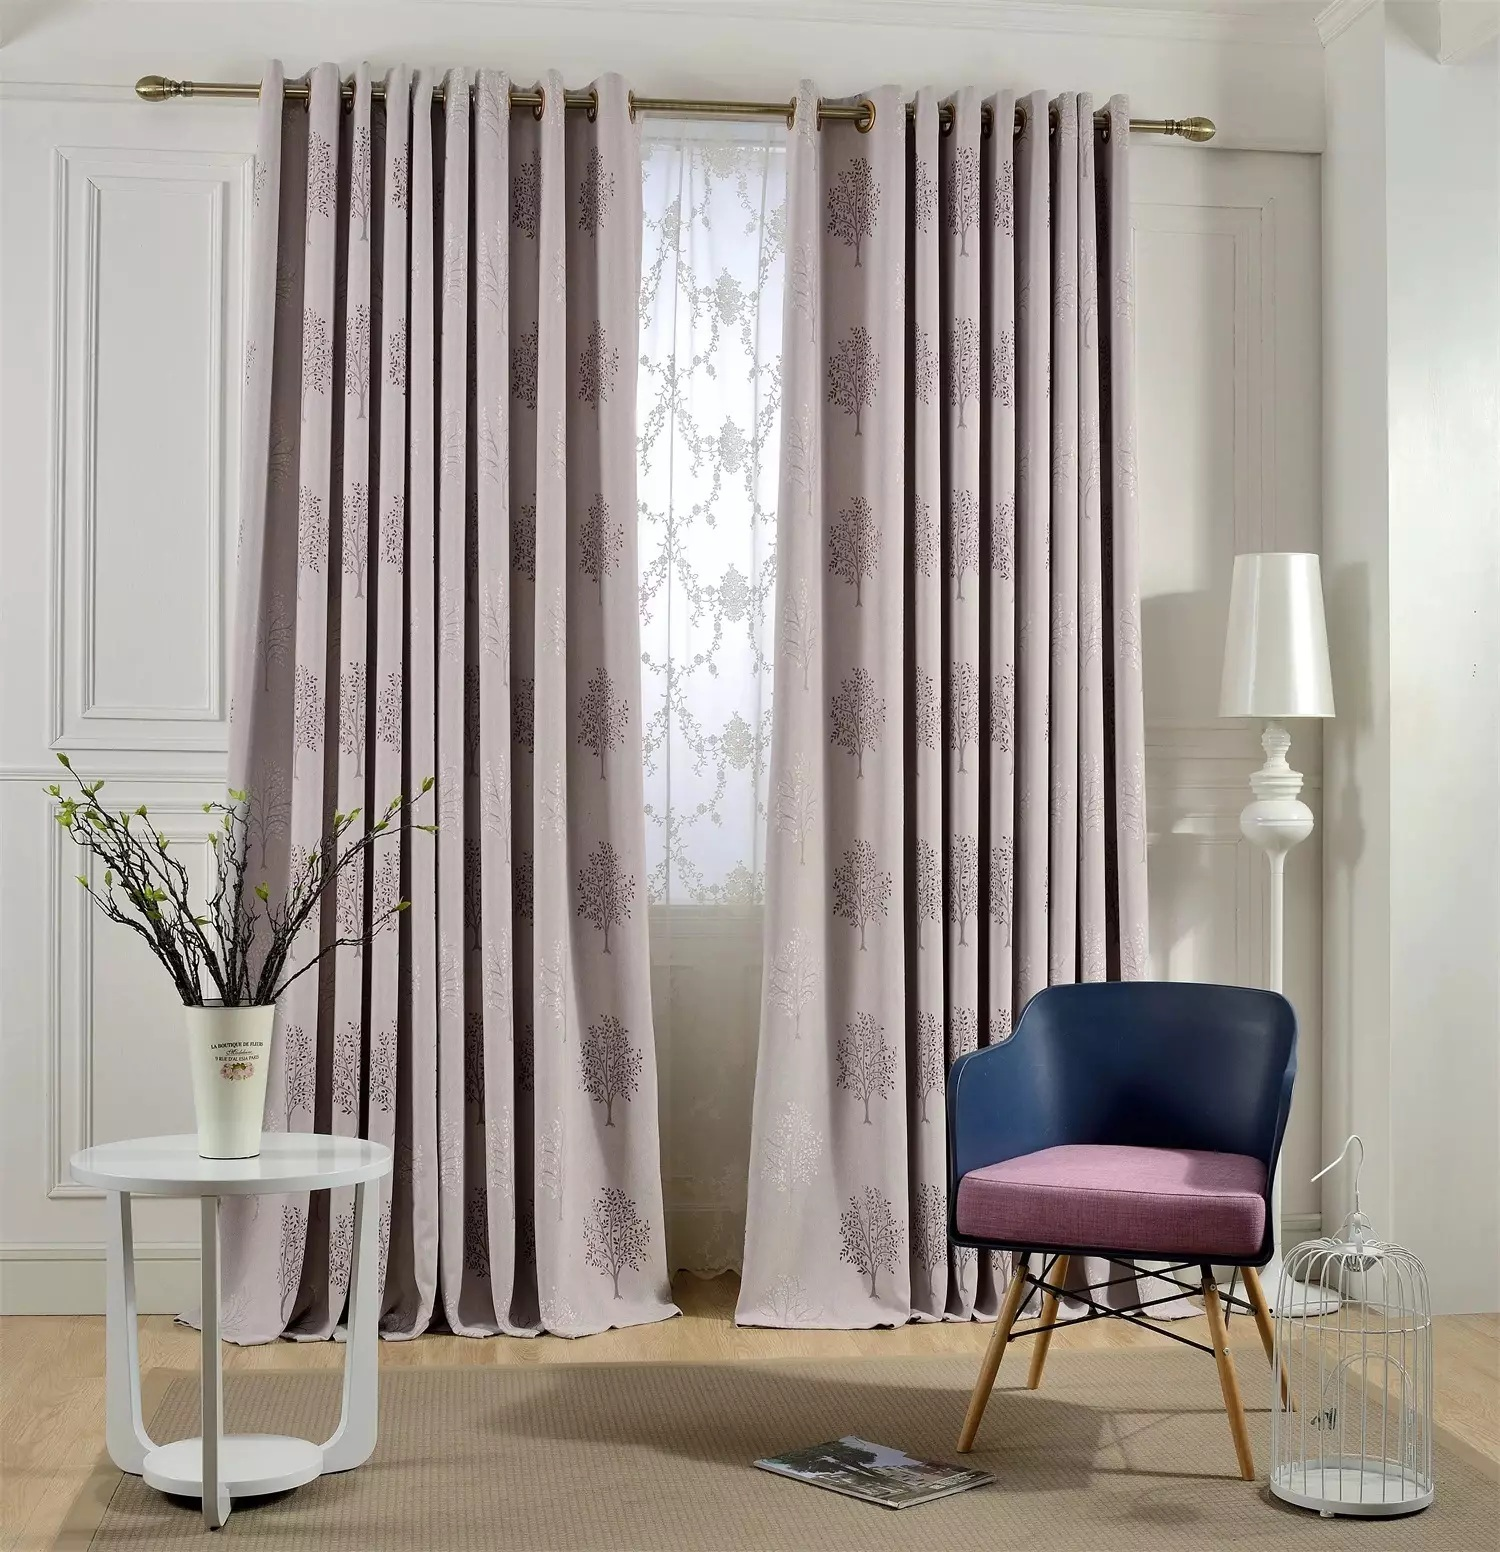 Curtain Trends 2021 1